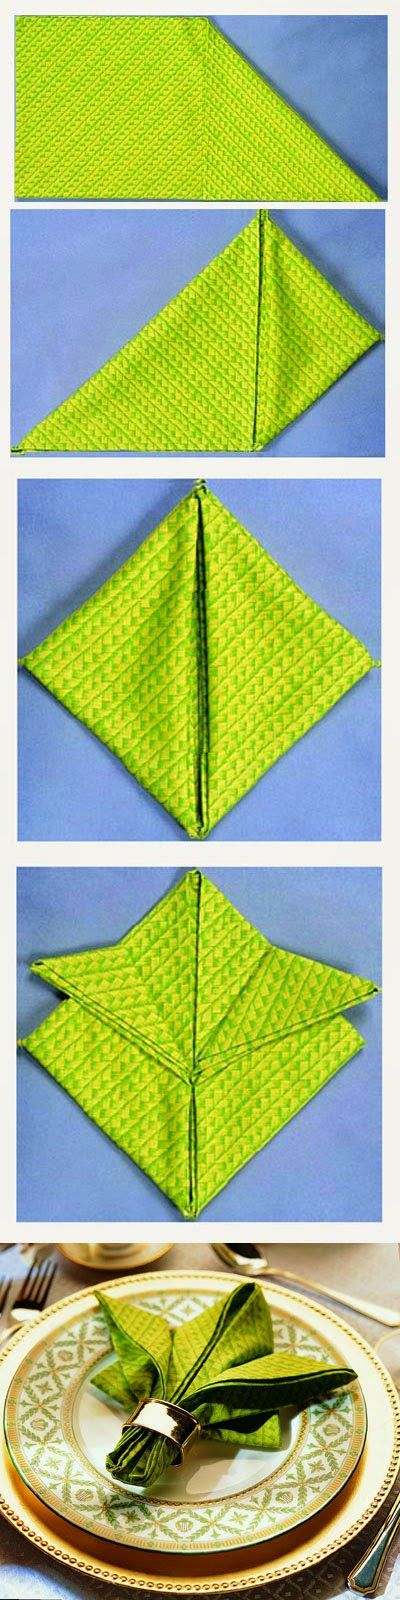 AMIGA DA MODA: COMO DOBRAR GUARDANAPO / HOW TO FOLD NAPKIN